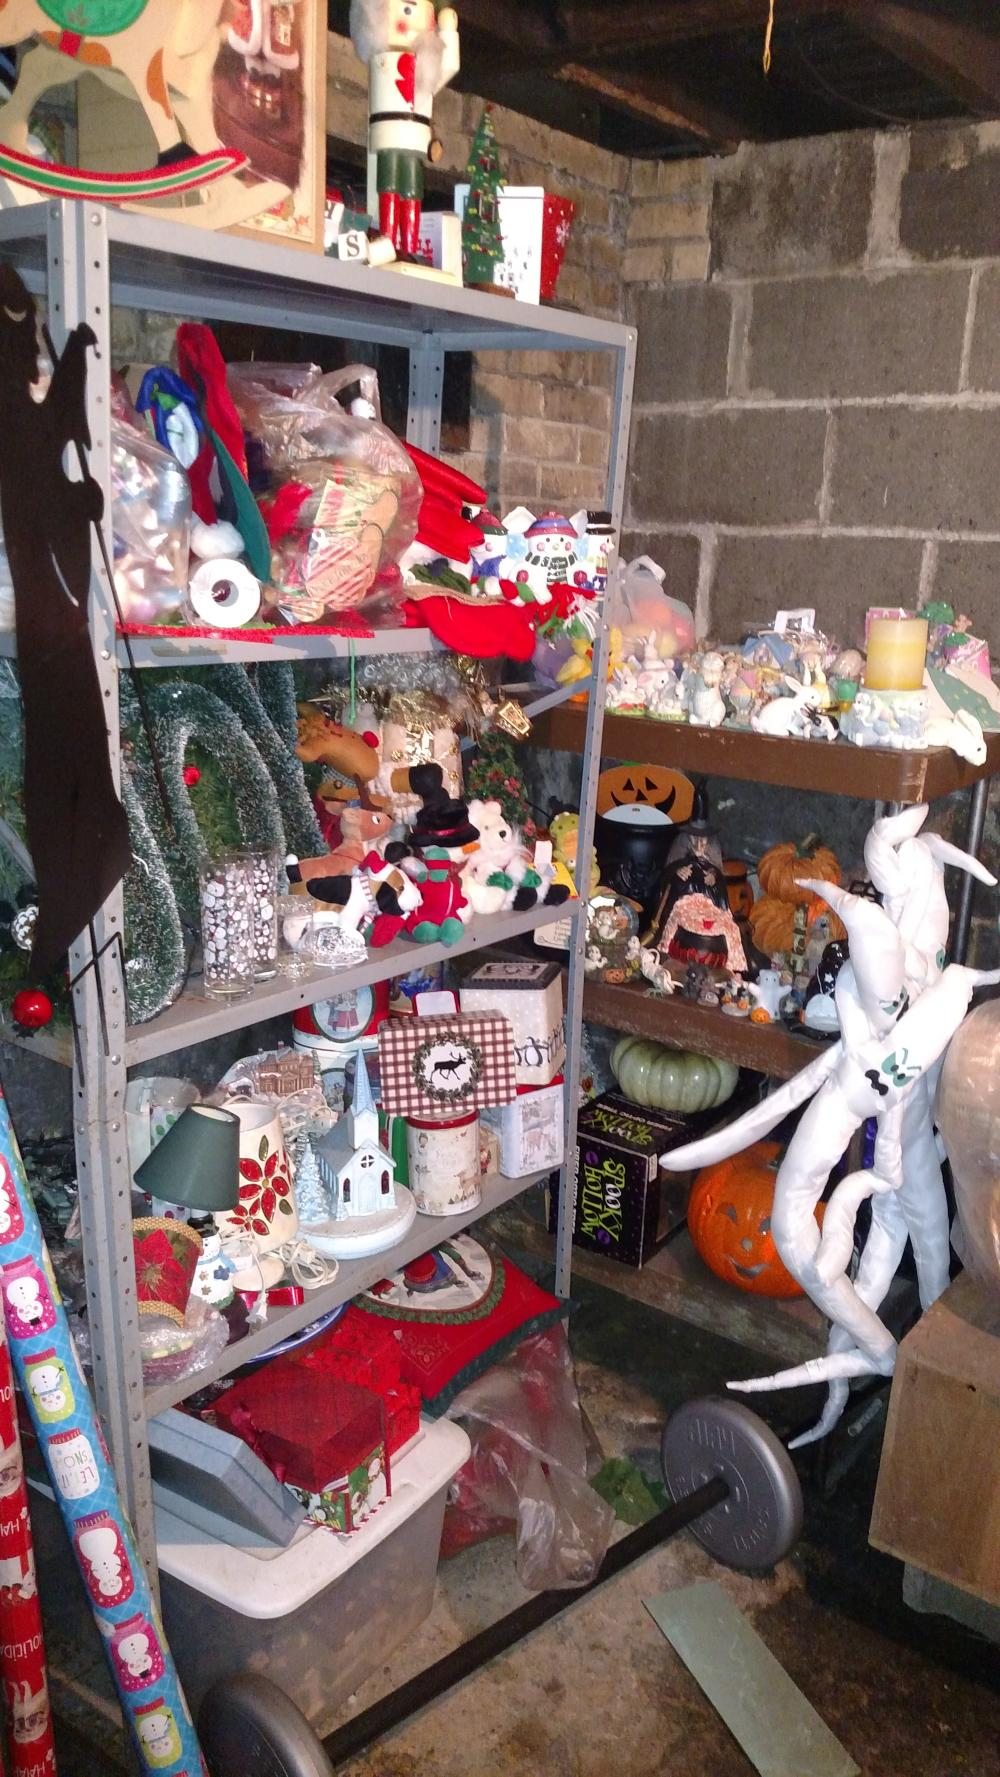 holiday room contents-- christmas, ghosts, bows, wrapping paper, totes, tins, bunnies, snow globes, merry joblot